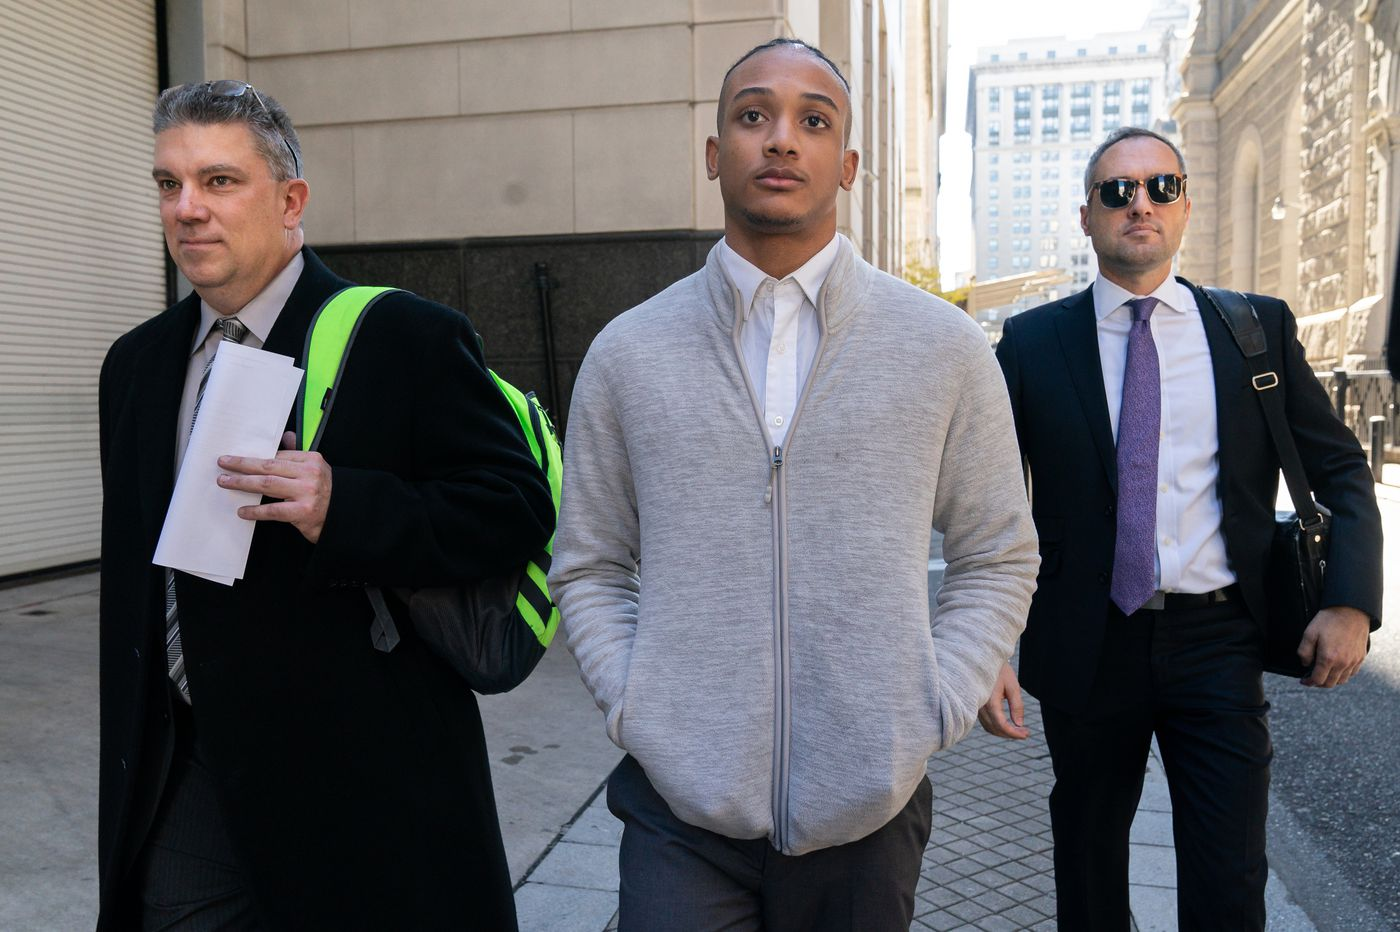 Judge warns accused Rittenhouse stabber over a request to follow victim's brother on Instagram